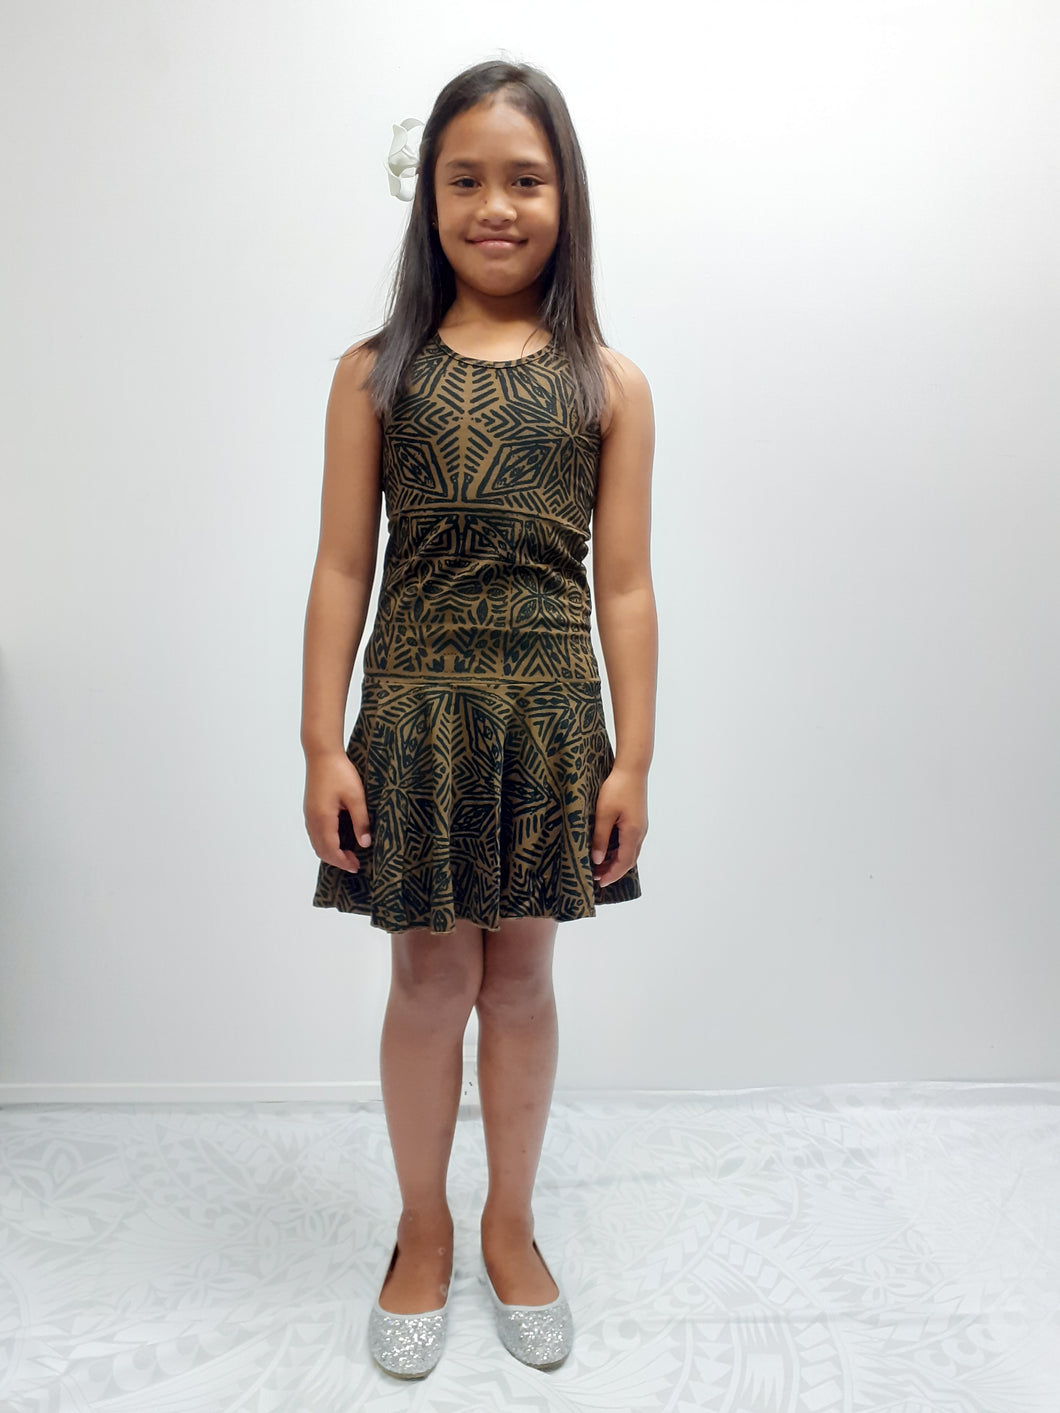 Girls dress LG972 Olive